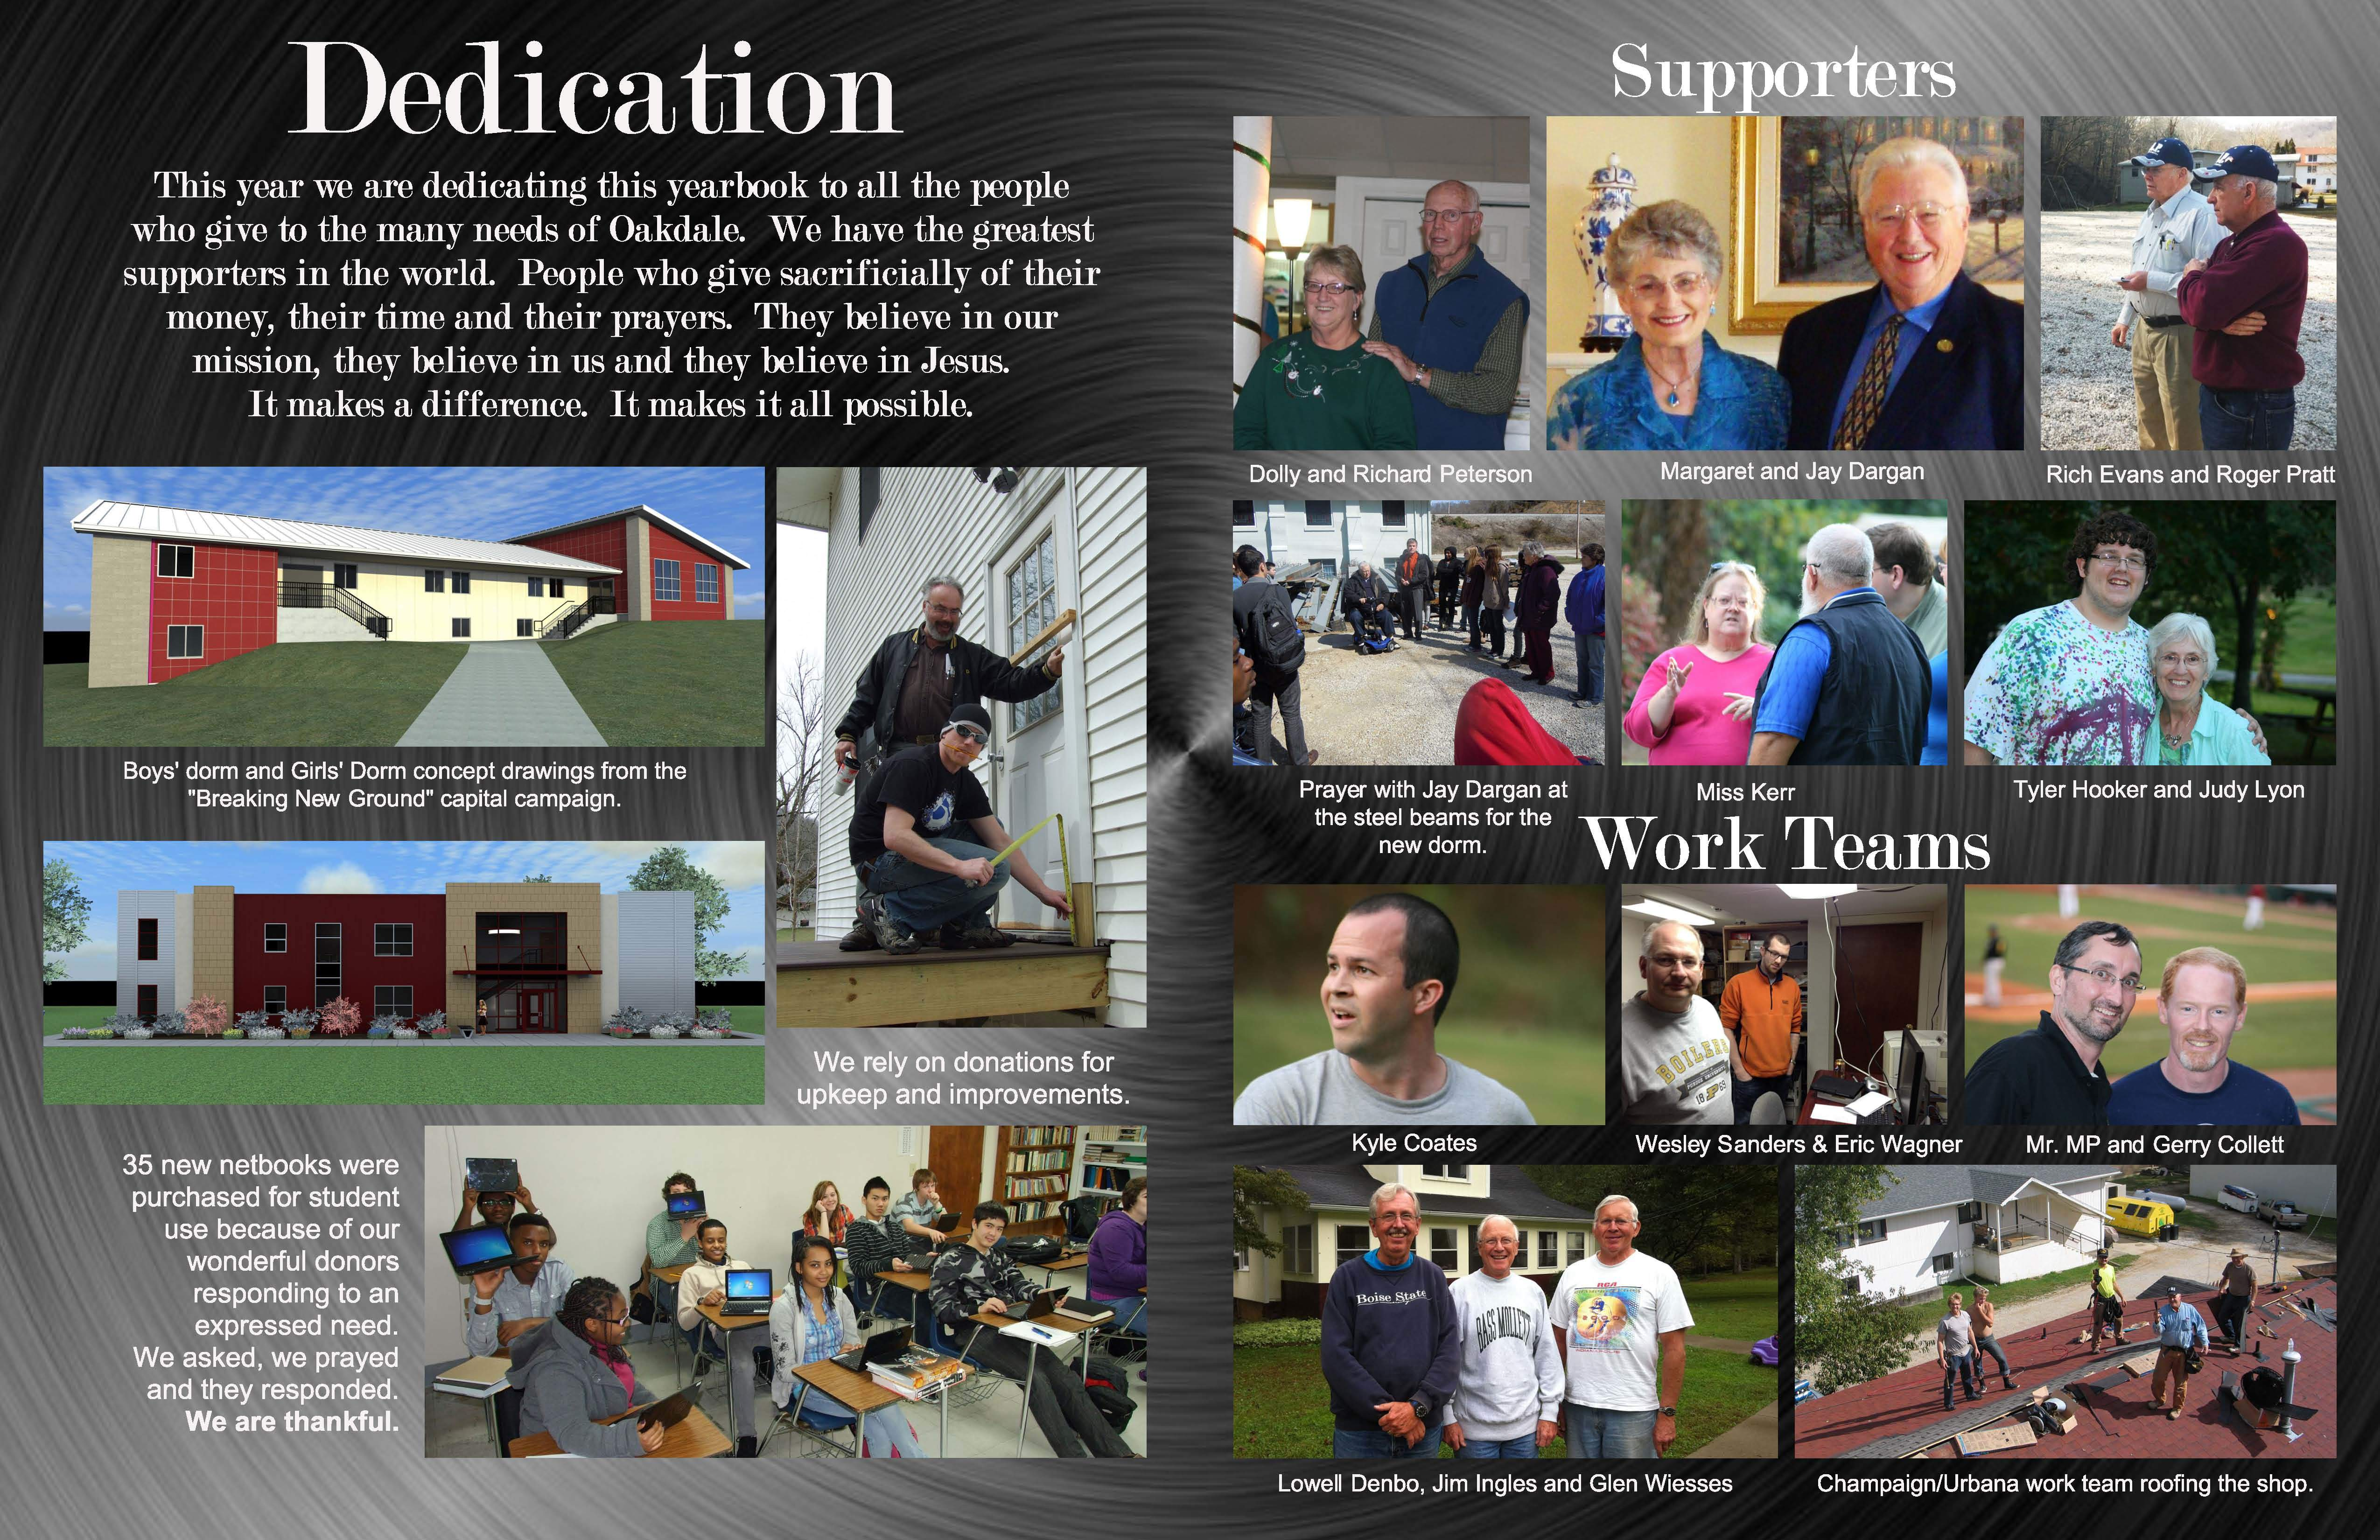 Here is the 2-page dedication spread. Click on the image below to view ...